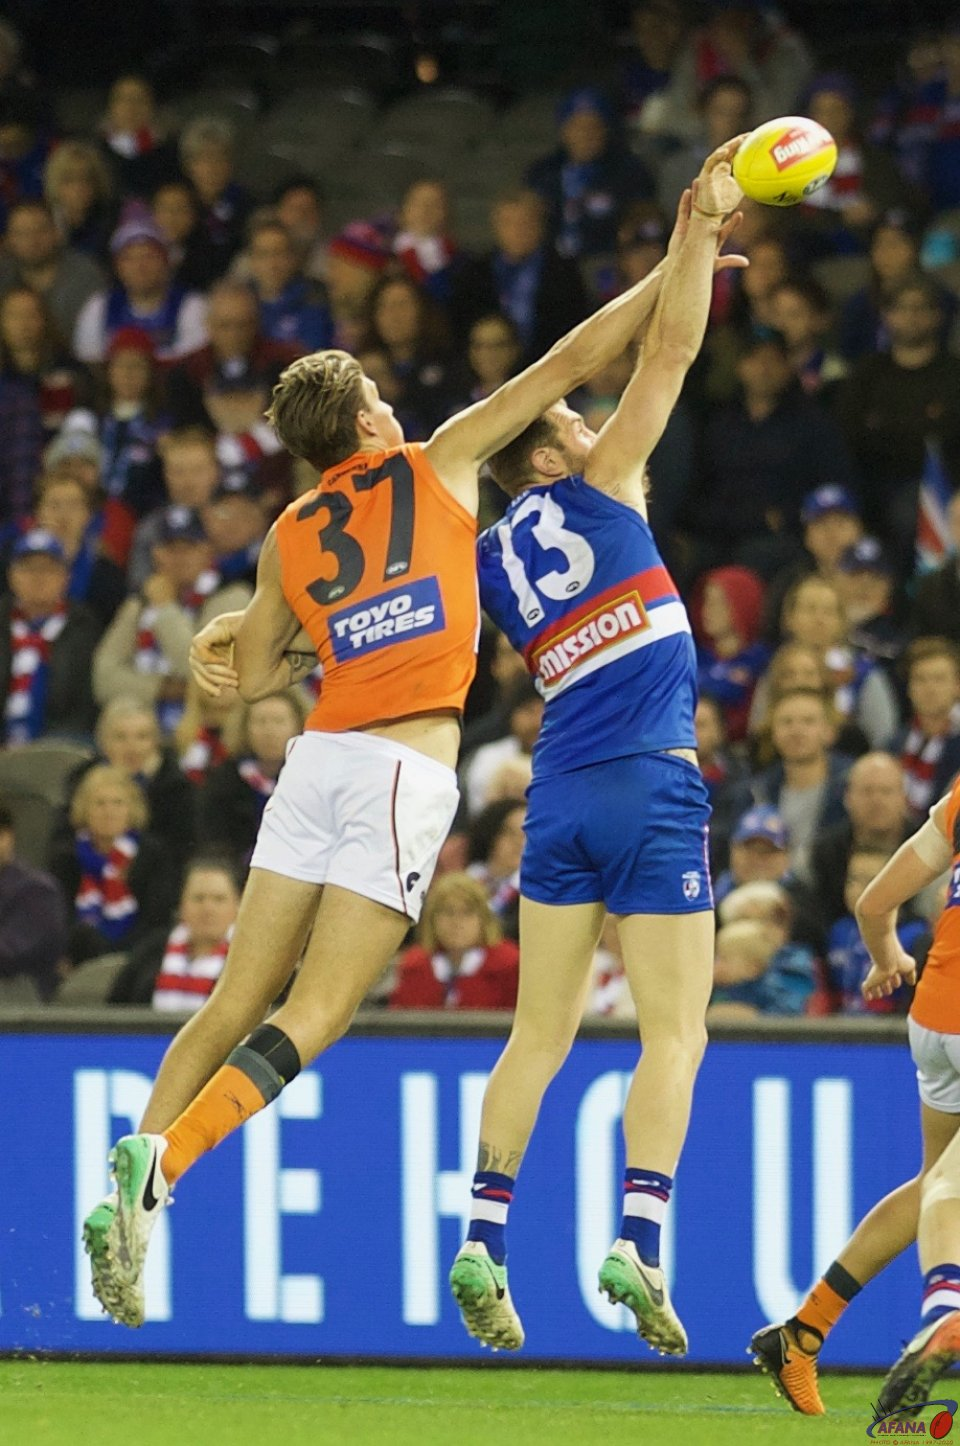 Rory Lobb and Travis Cloke contest the ball up